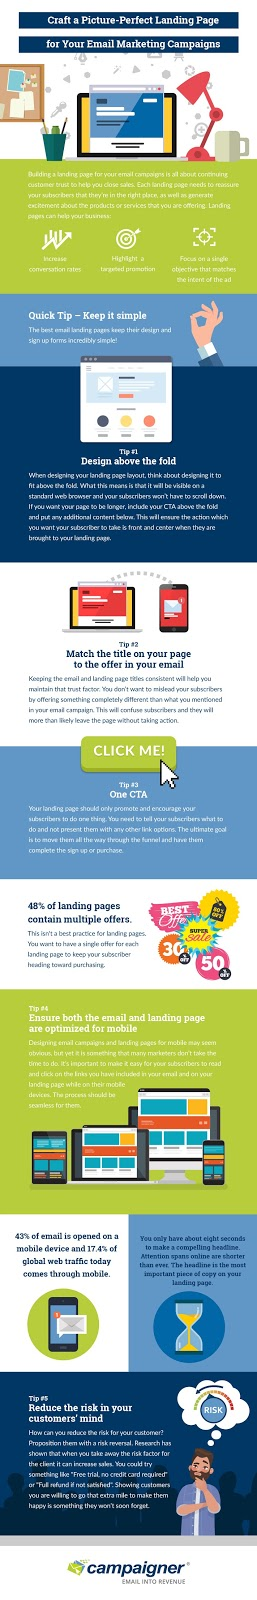 Craft a Picture-Perfect Landing Page for Your Email Marketing Campaigns